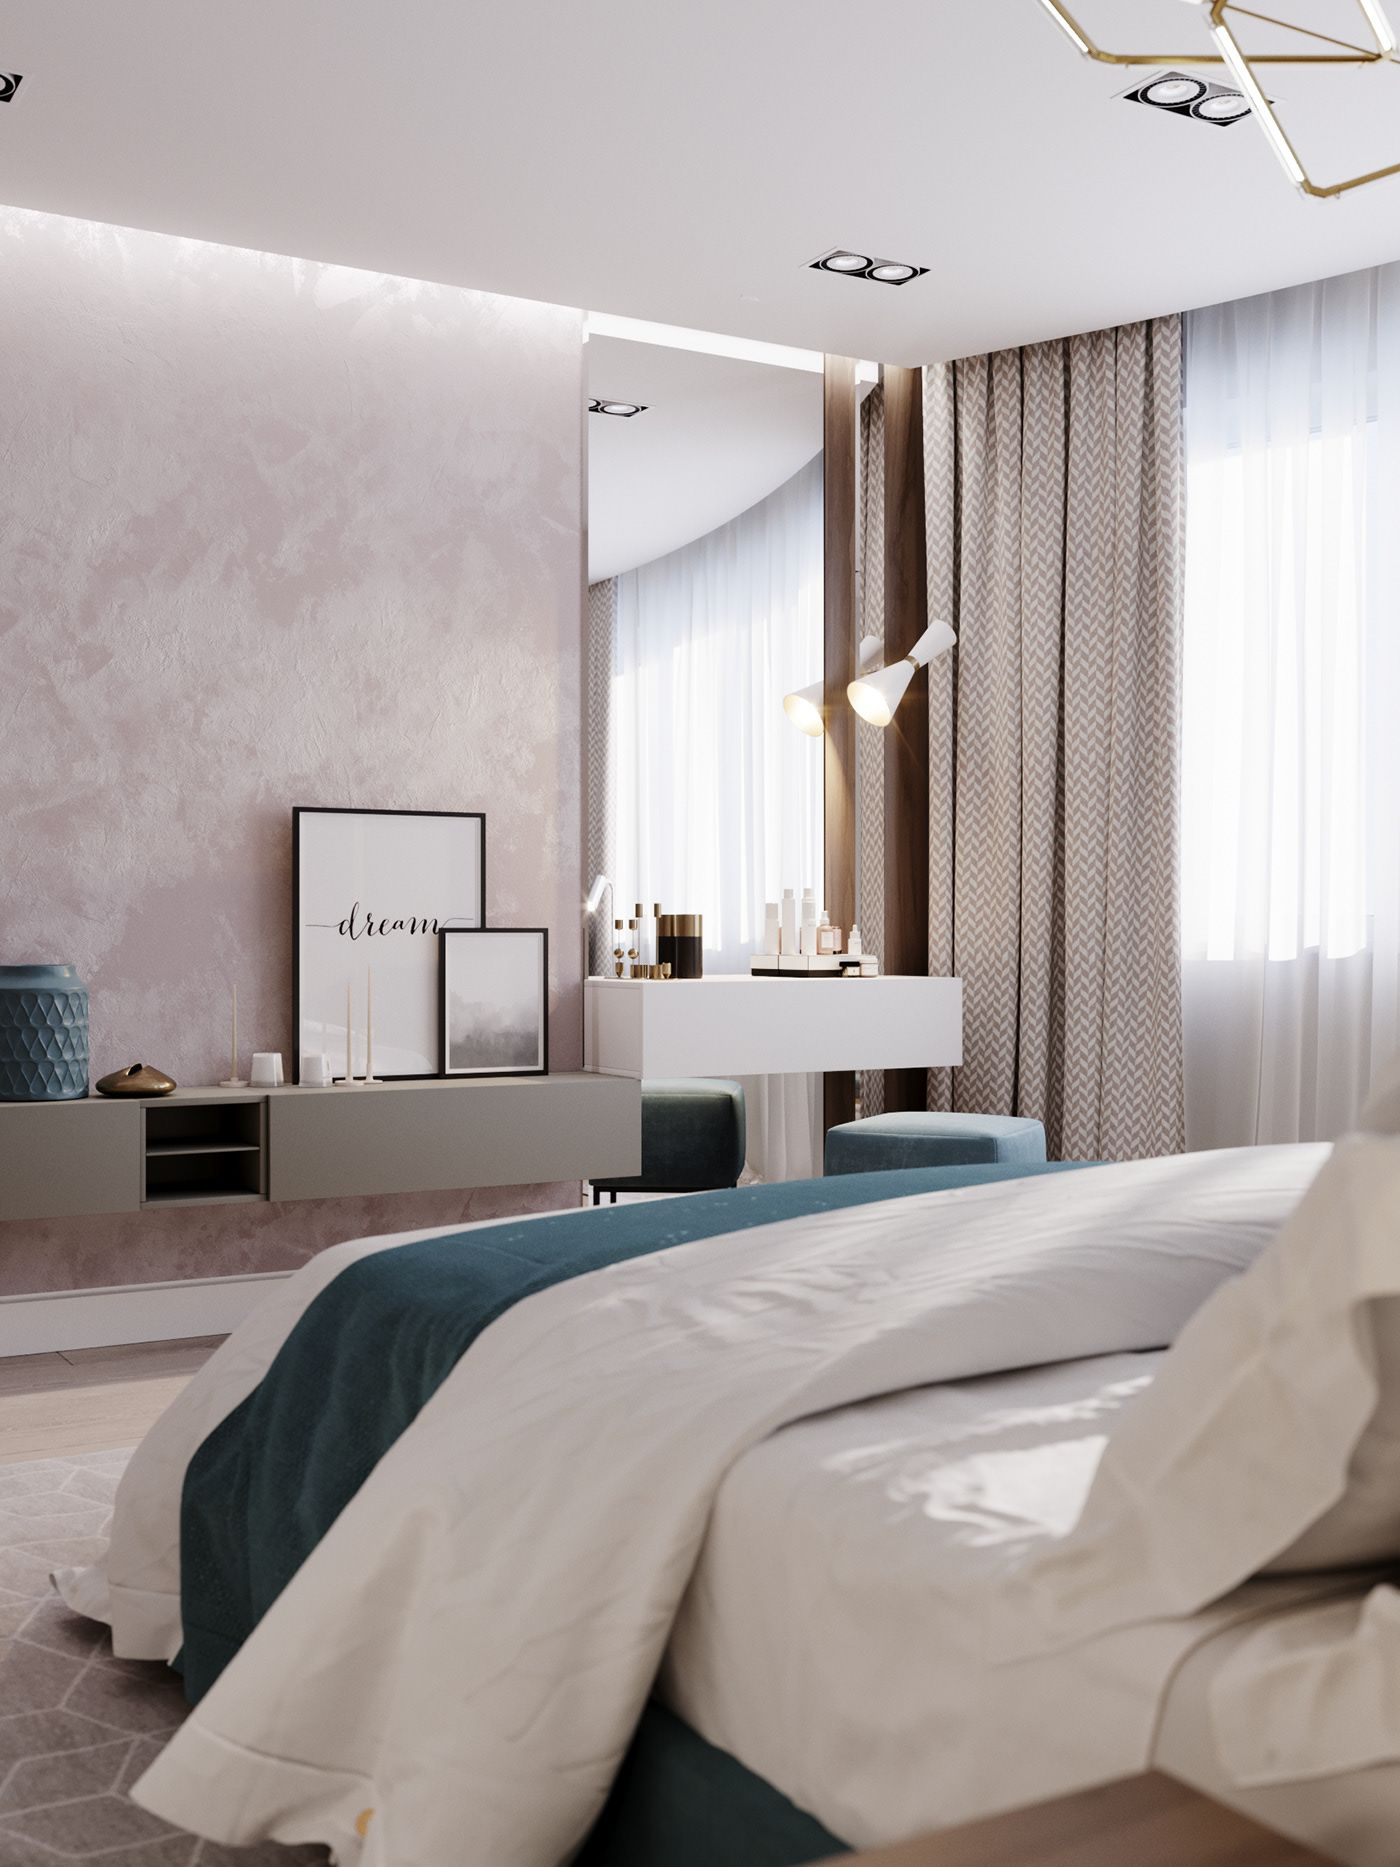 Apartment in Moscow, Russia on Behance in 2020 Interior